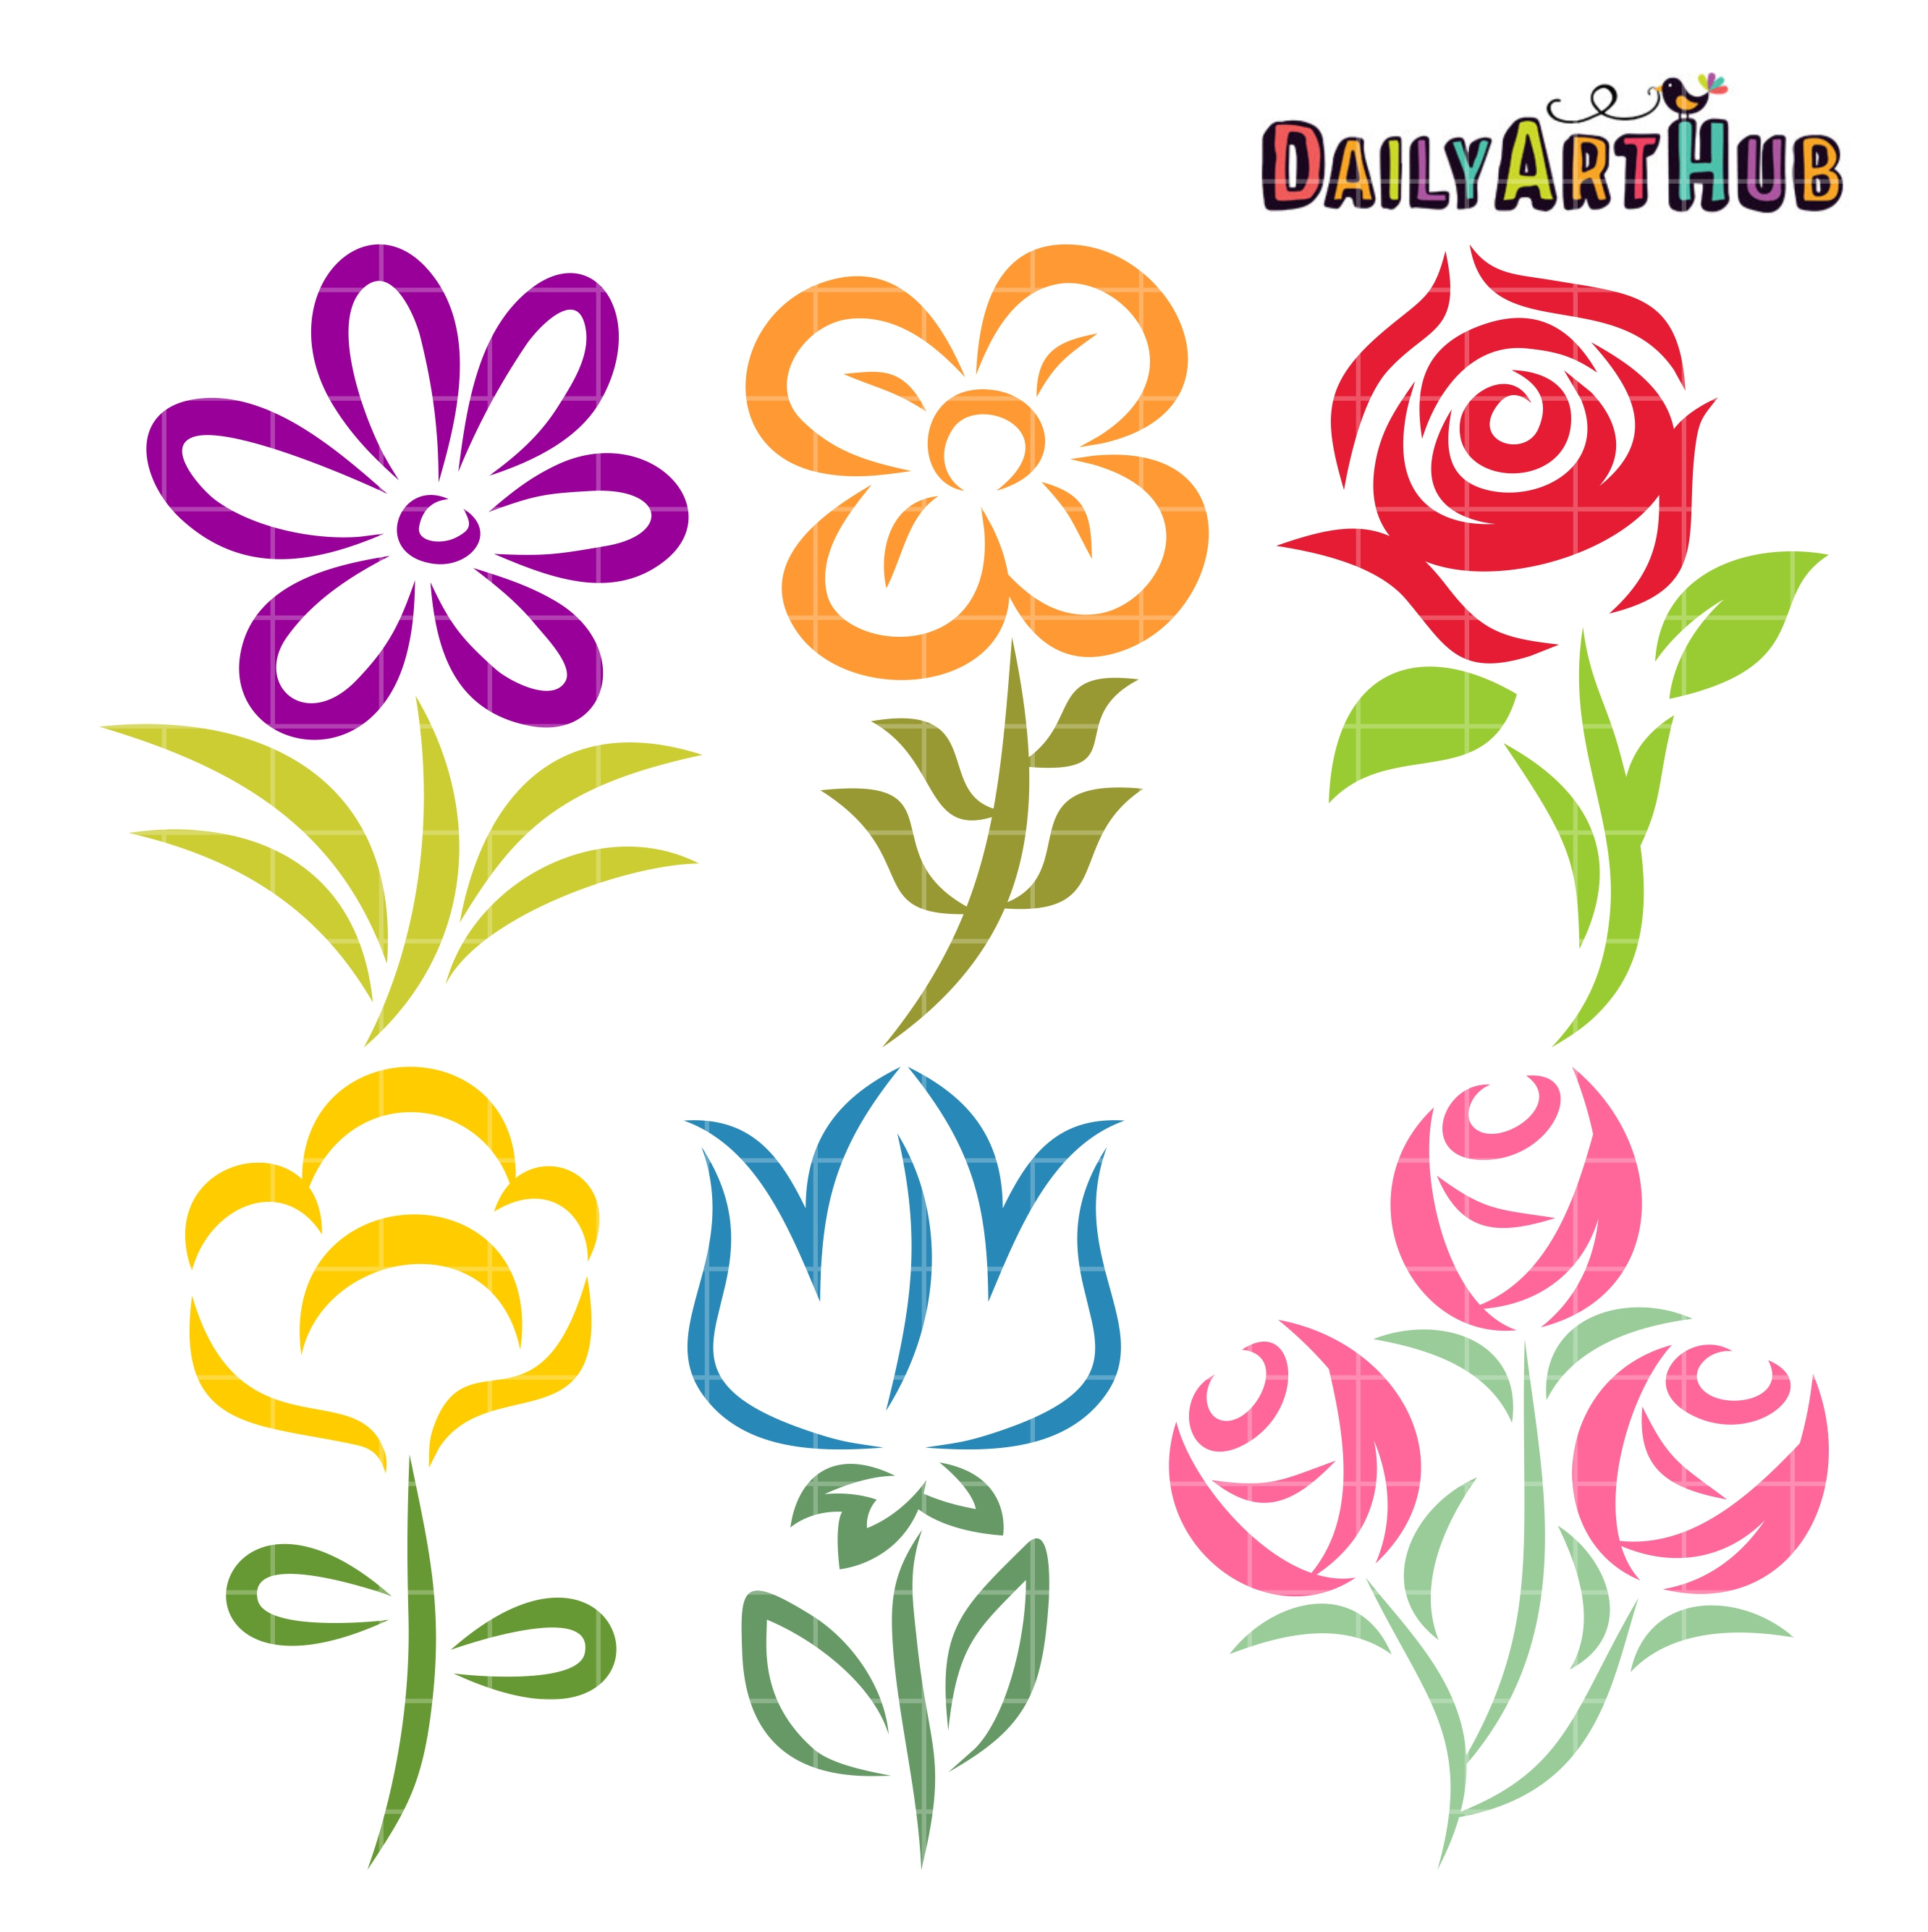 Beautiful Flower Shapes Clip Art Set Daily Art Hub